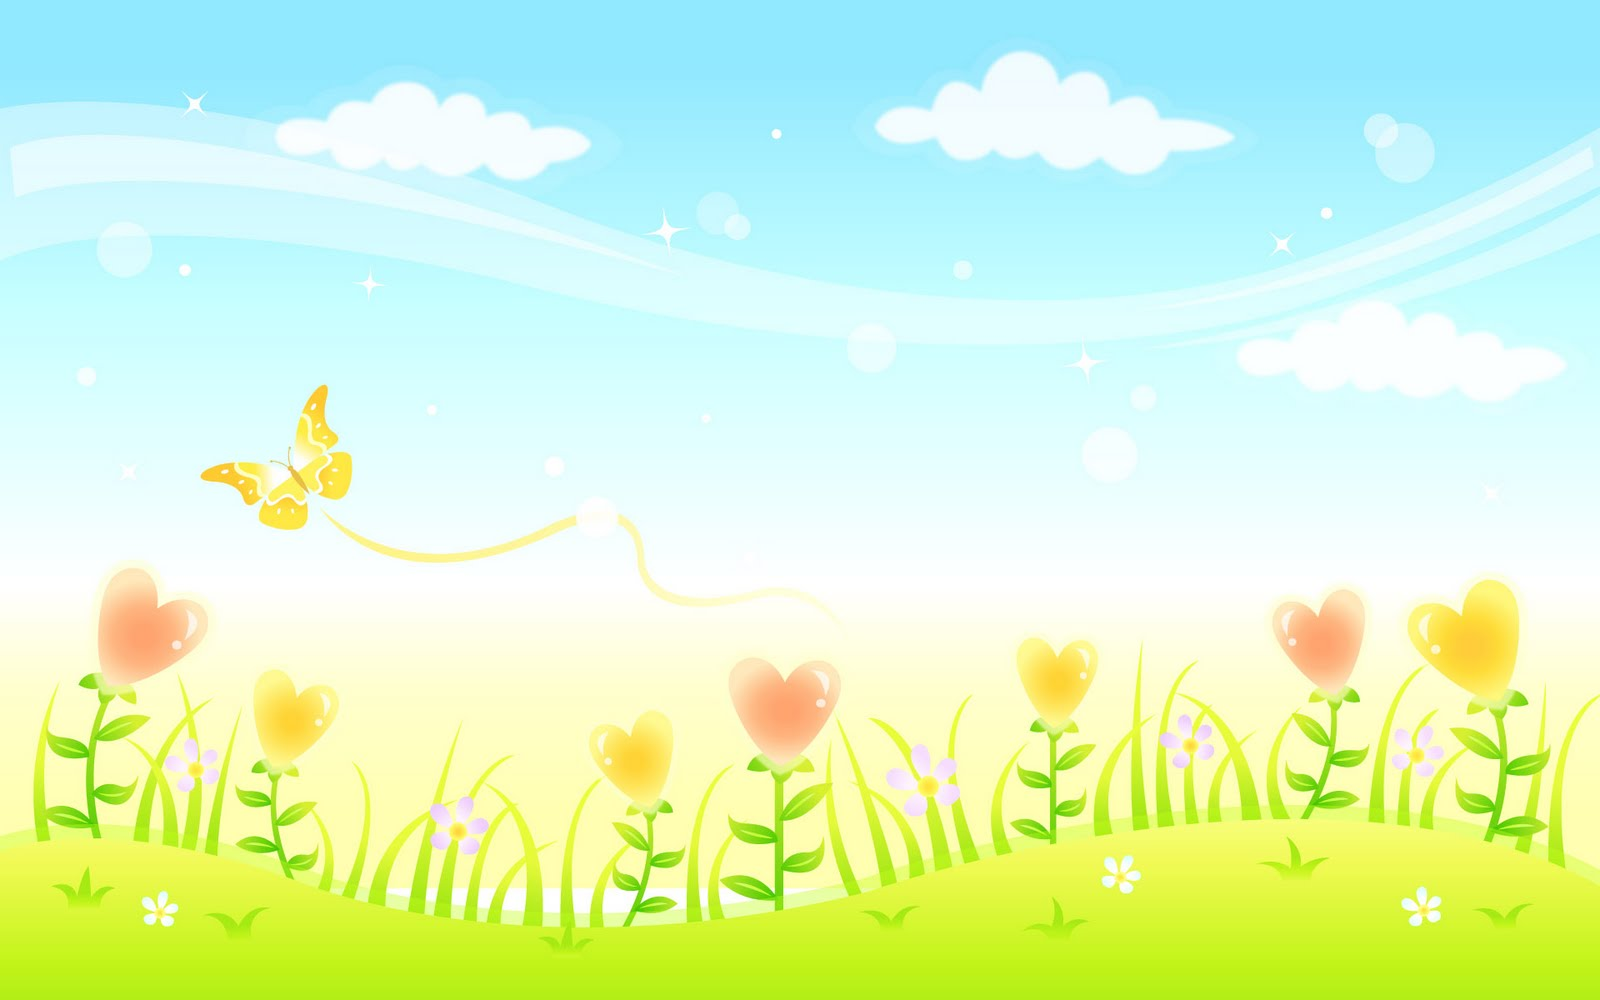 Free Animated Nature Flower Background for Powerpoint Slides